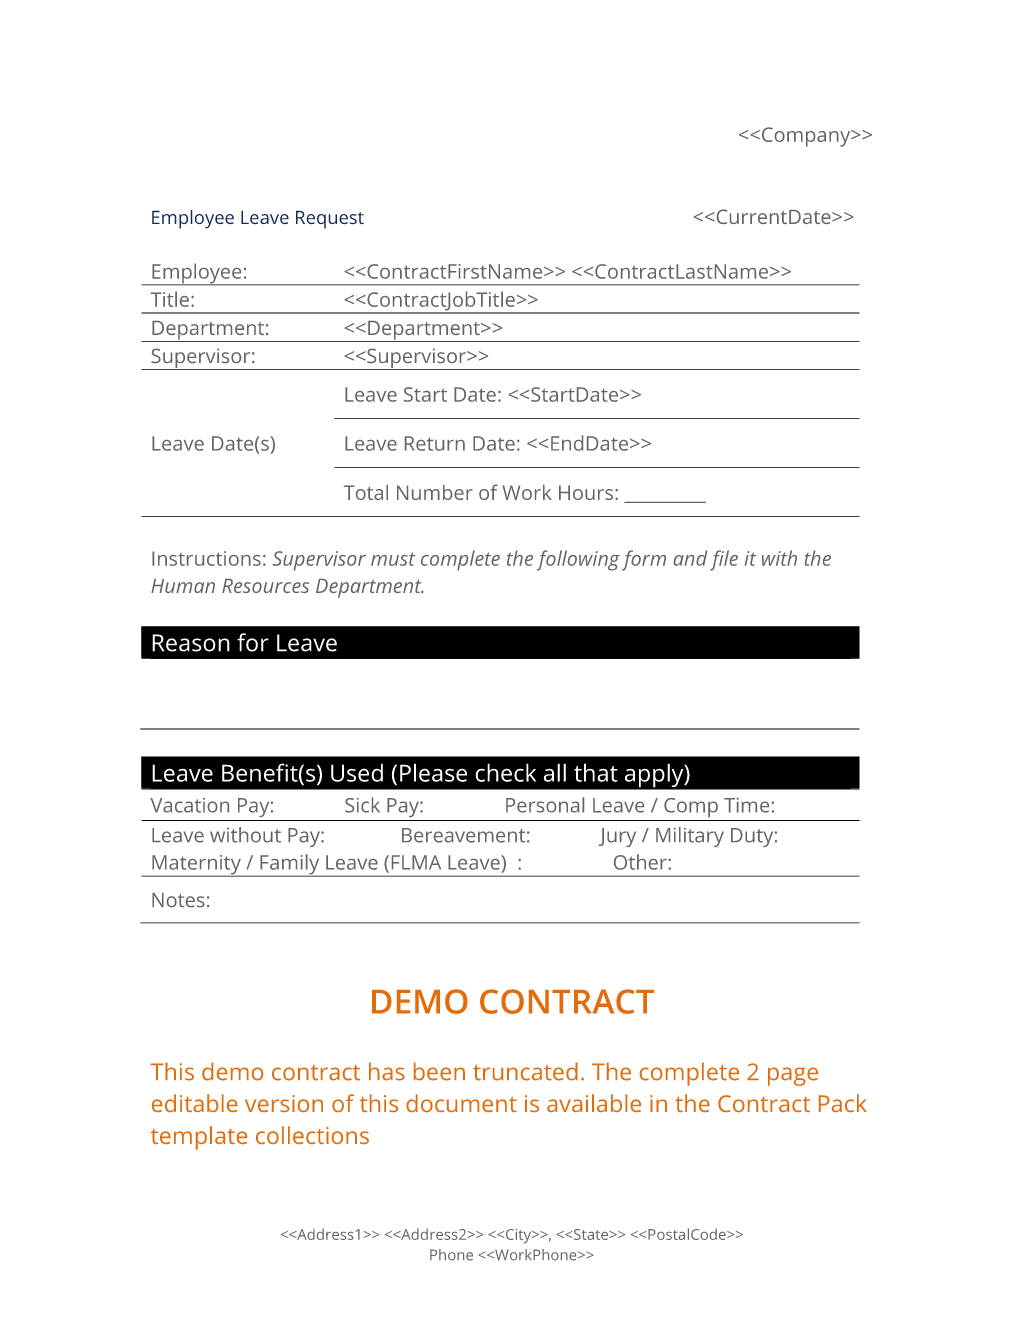 Employee Leave Request Form  Use The Employee Leave Request Form